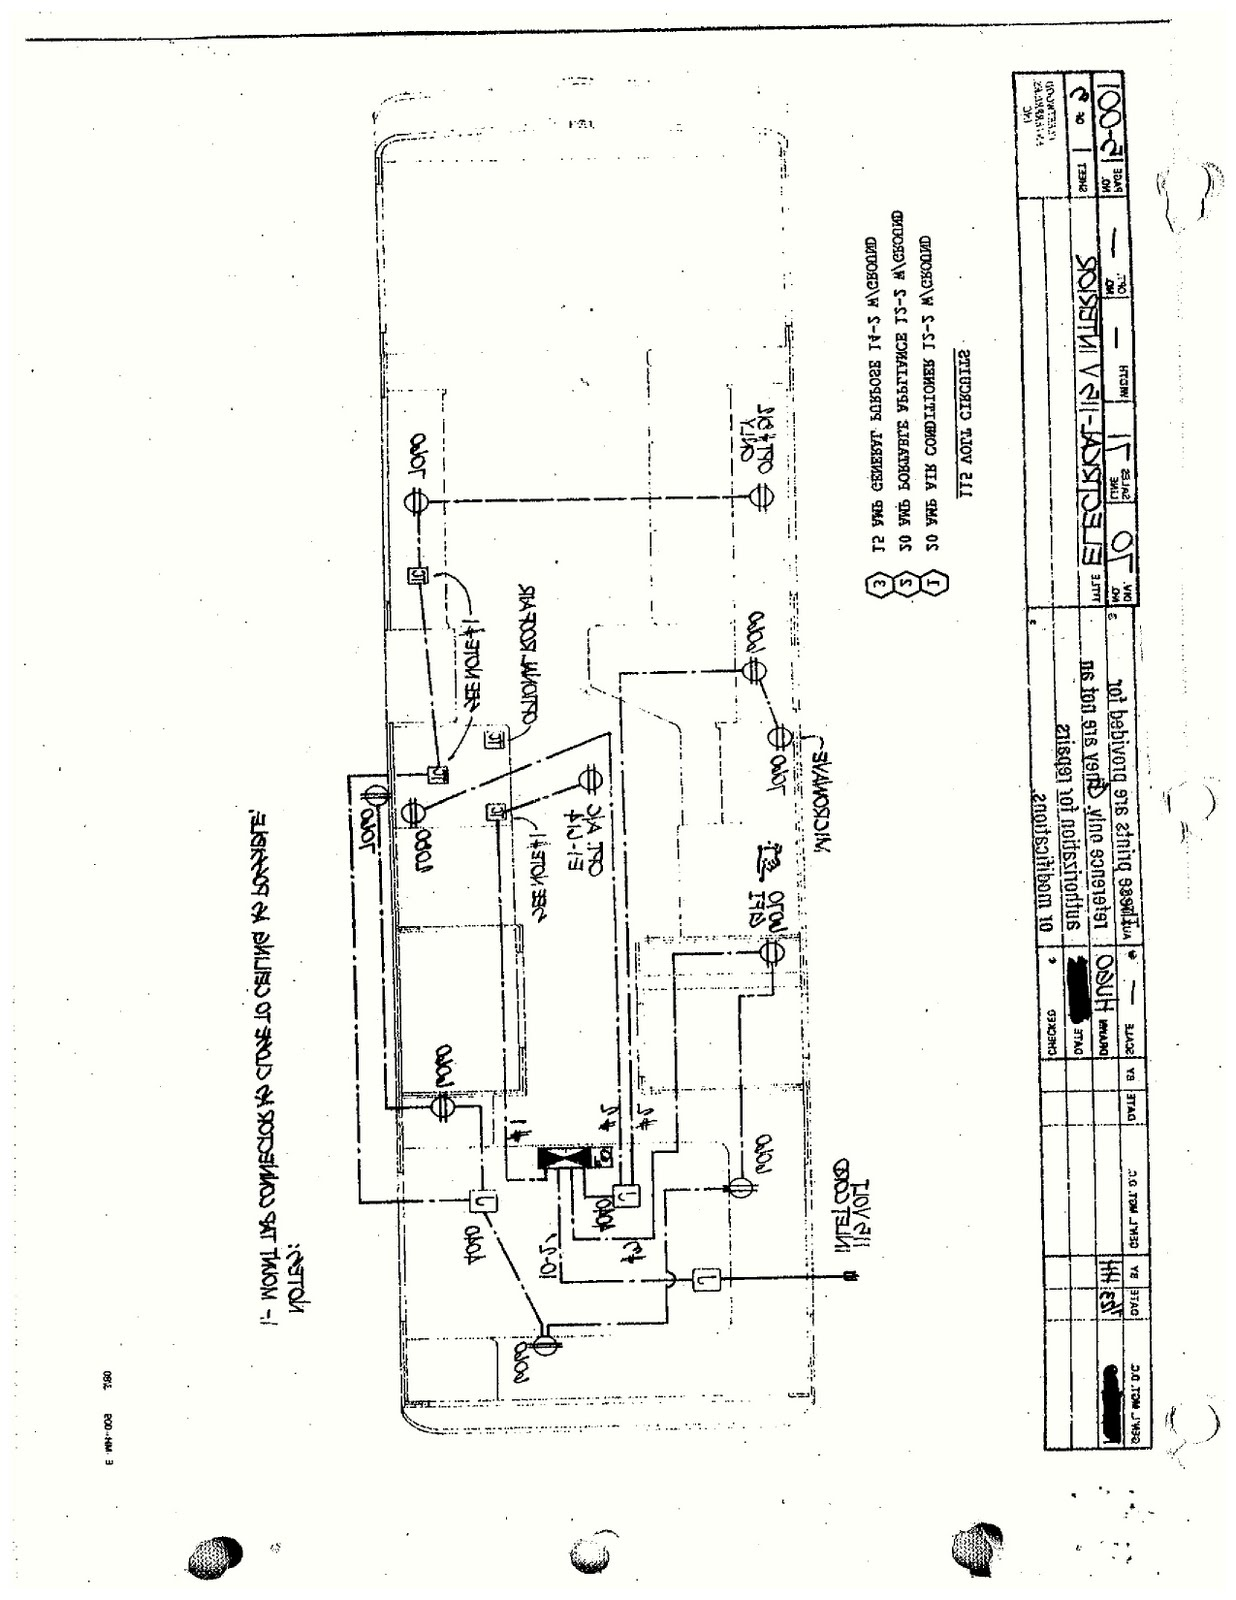 fleetwood pace arrow wiring data wiring diagram